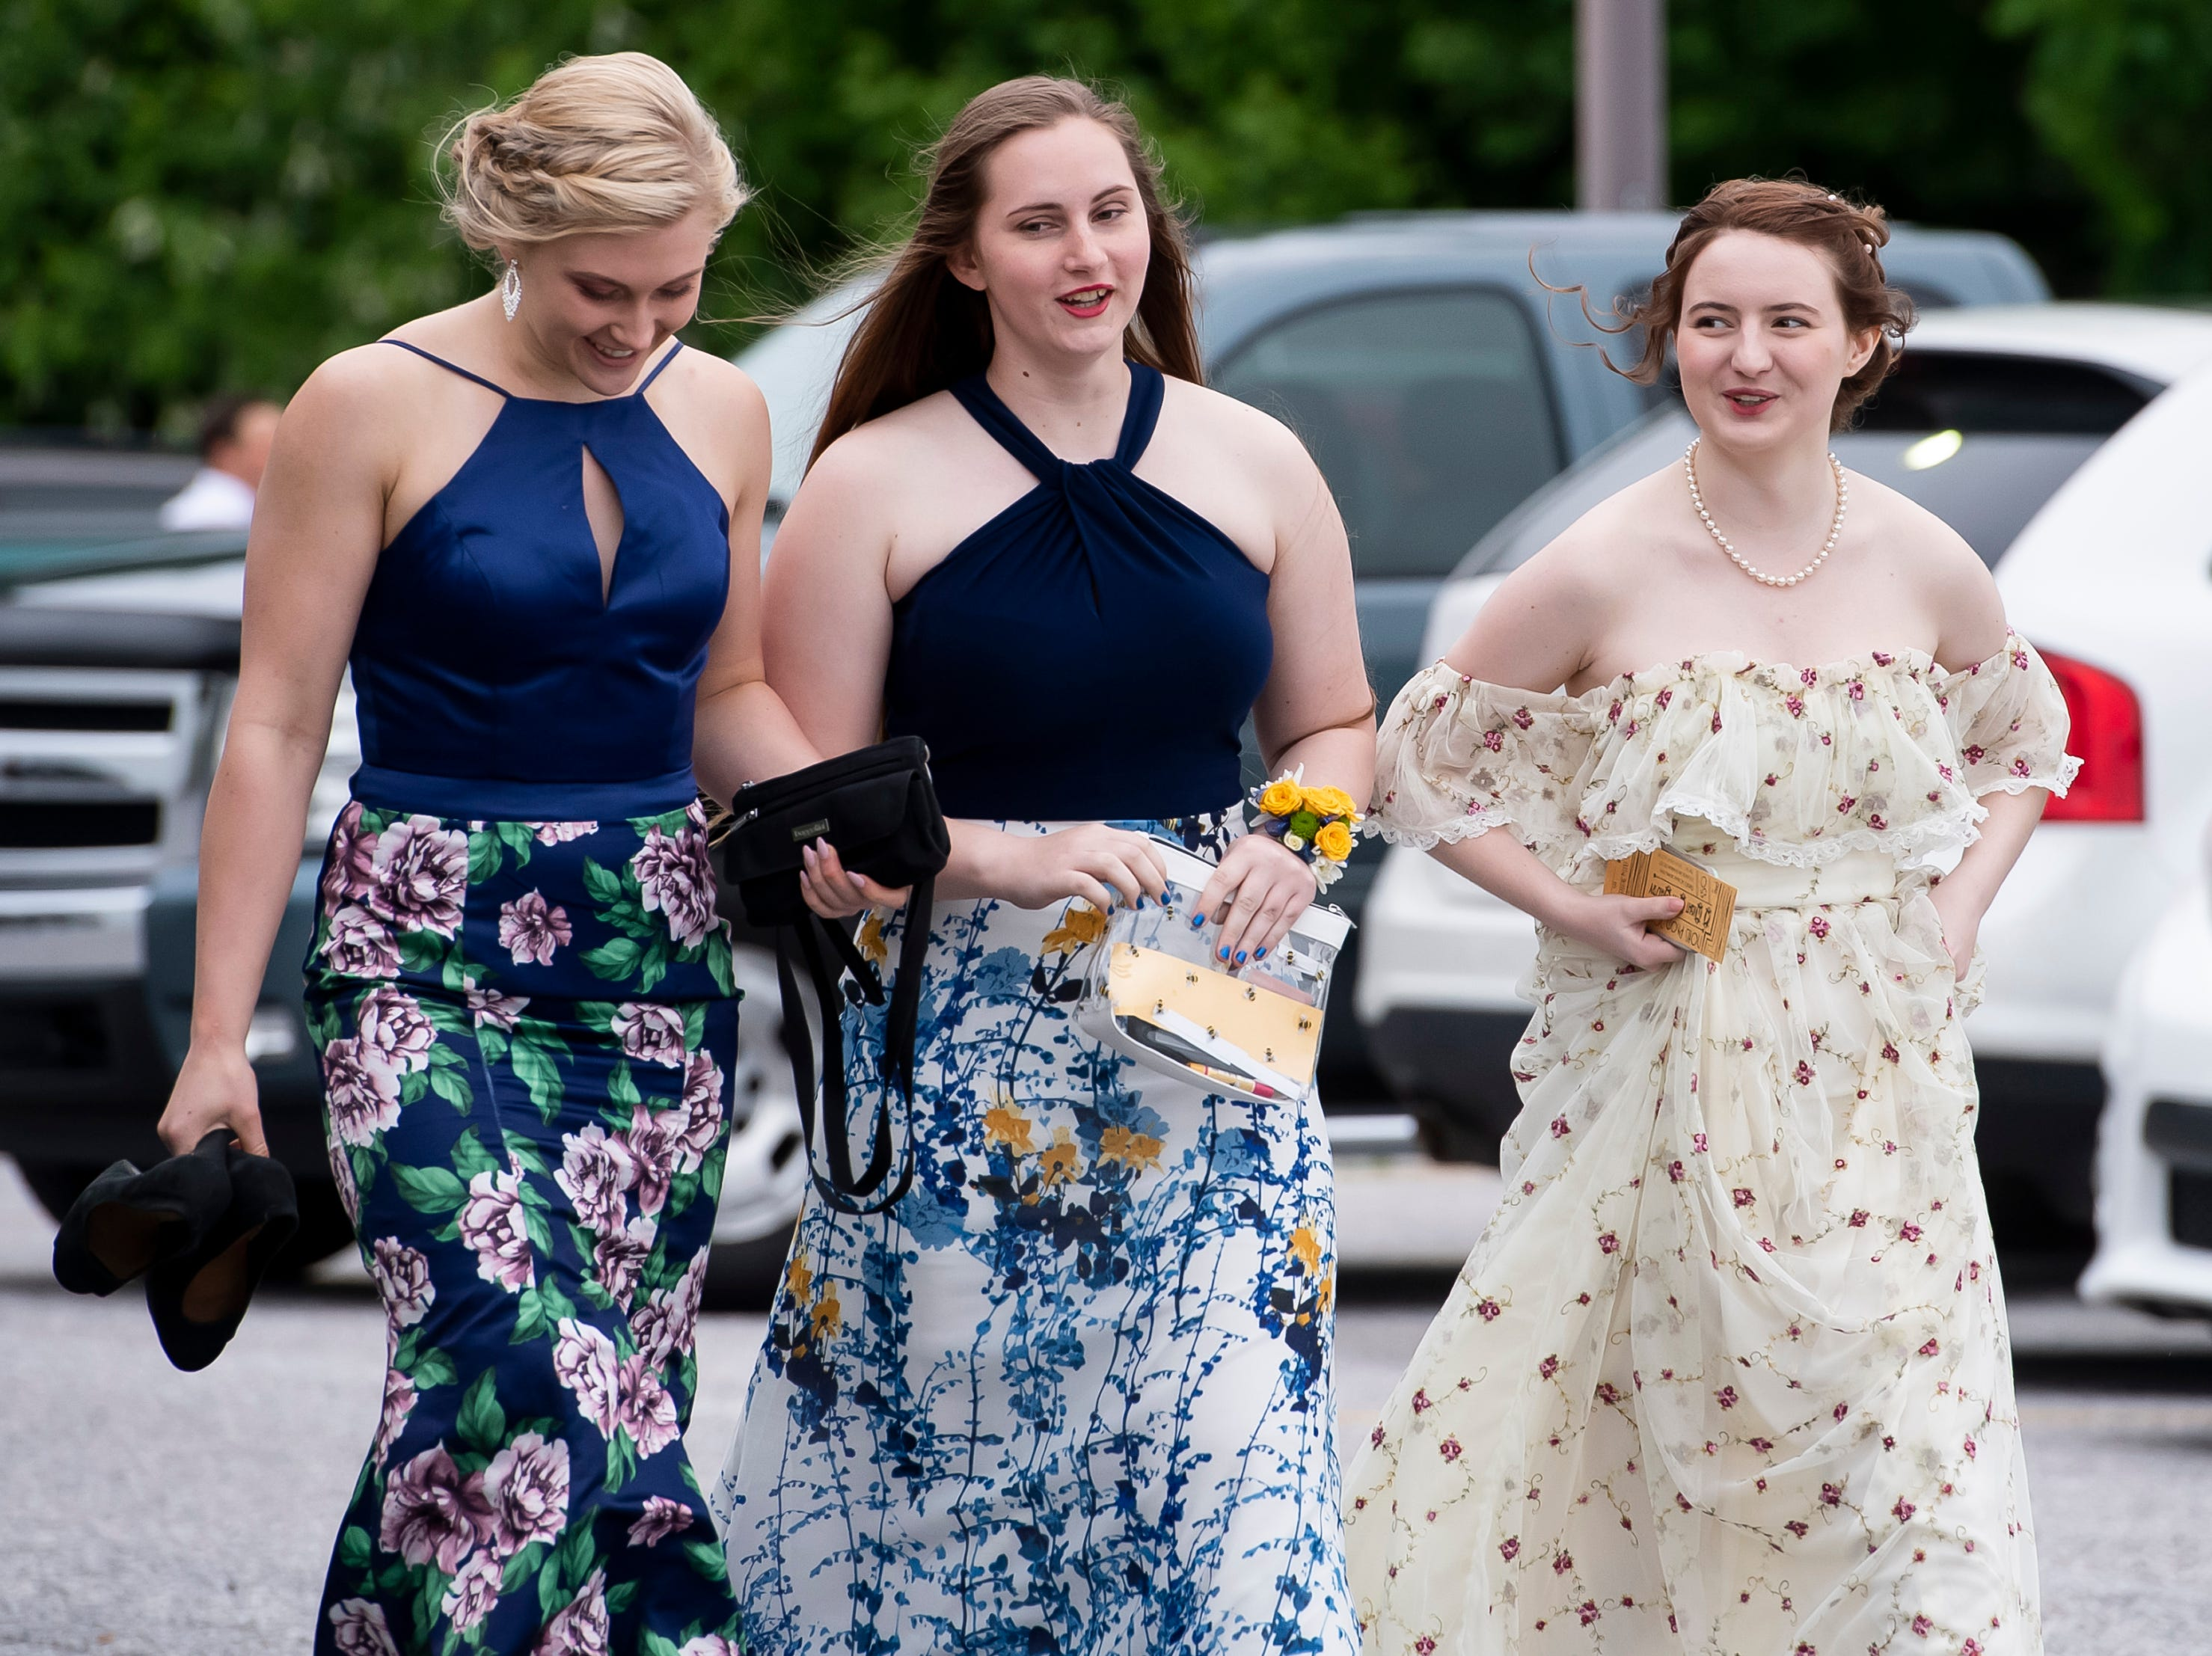 Students arrive at New Oxford High School's prom at Martin's in Westminster, Maryland on Saturday, May 11, 2019.